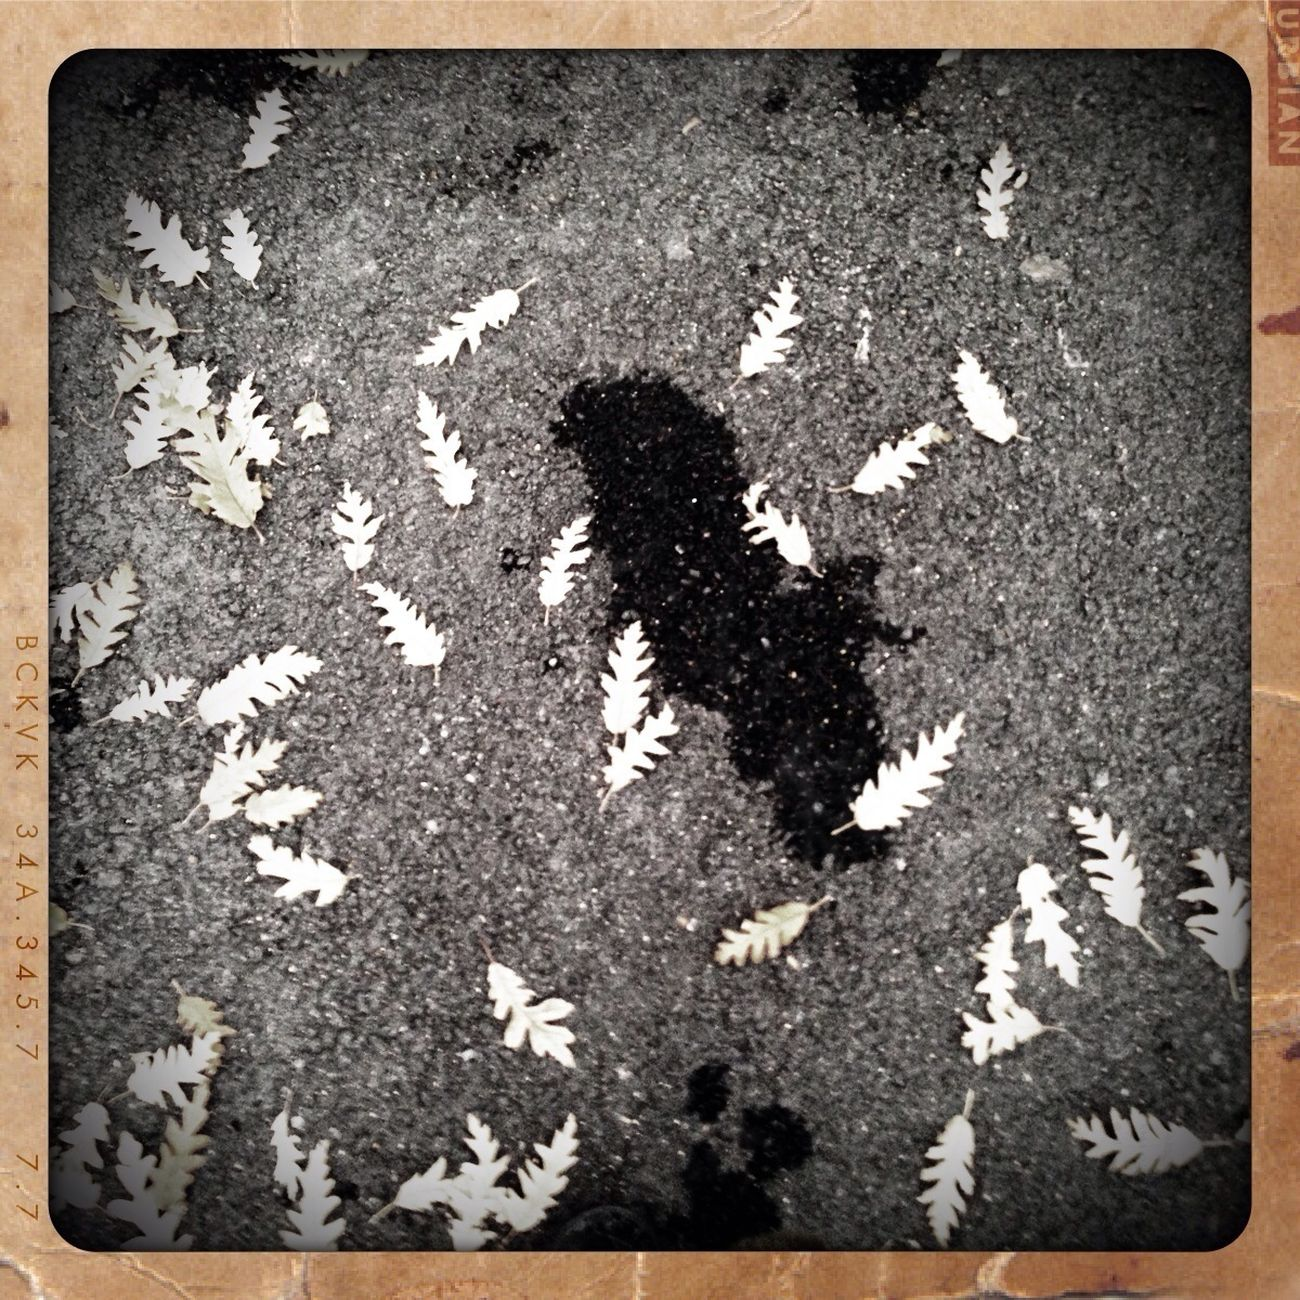 Leaves,nyc,tar,concrete, The End